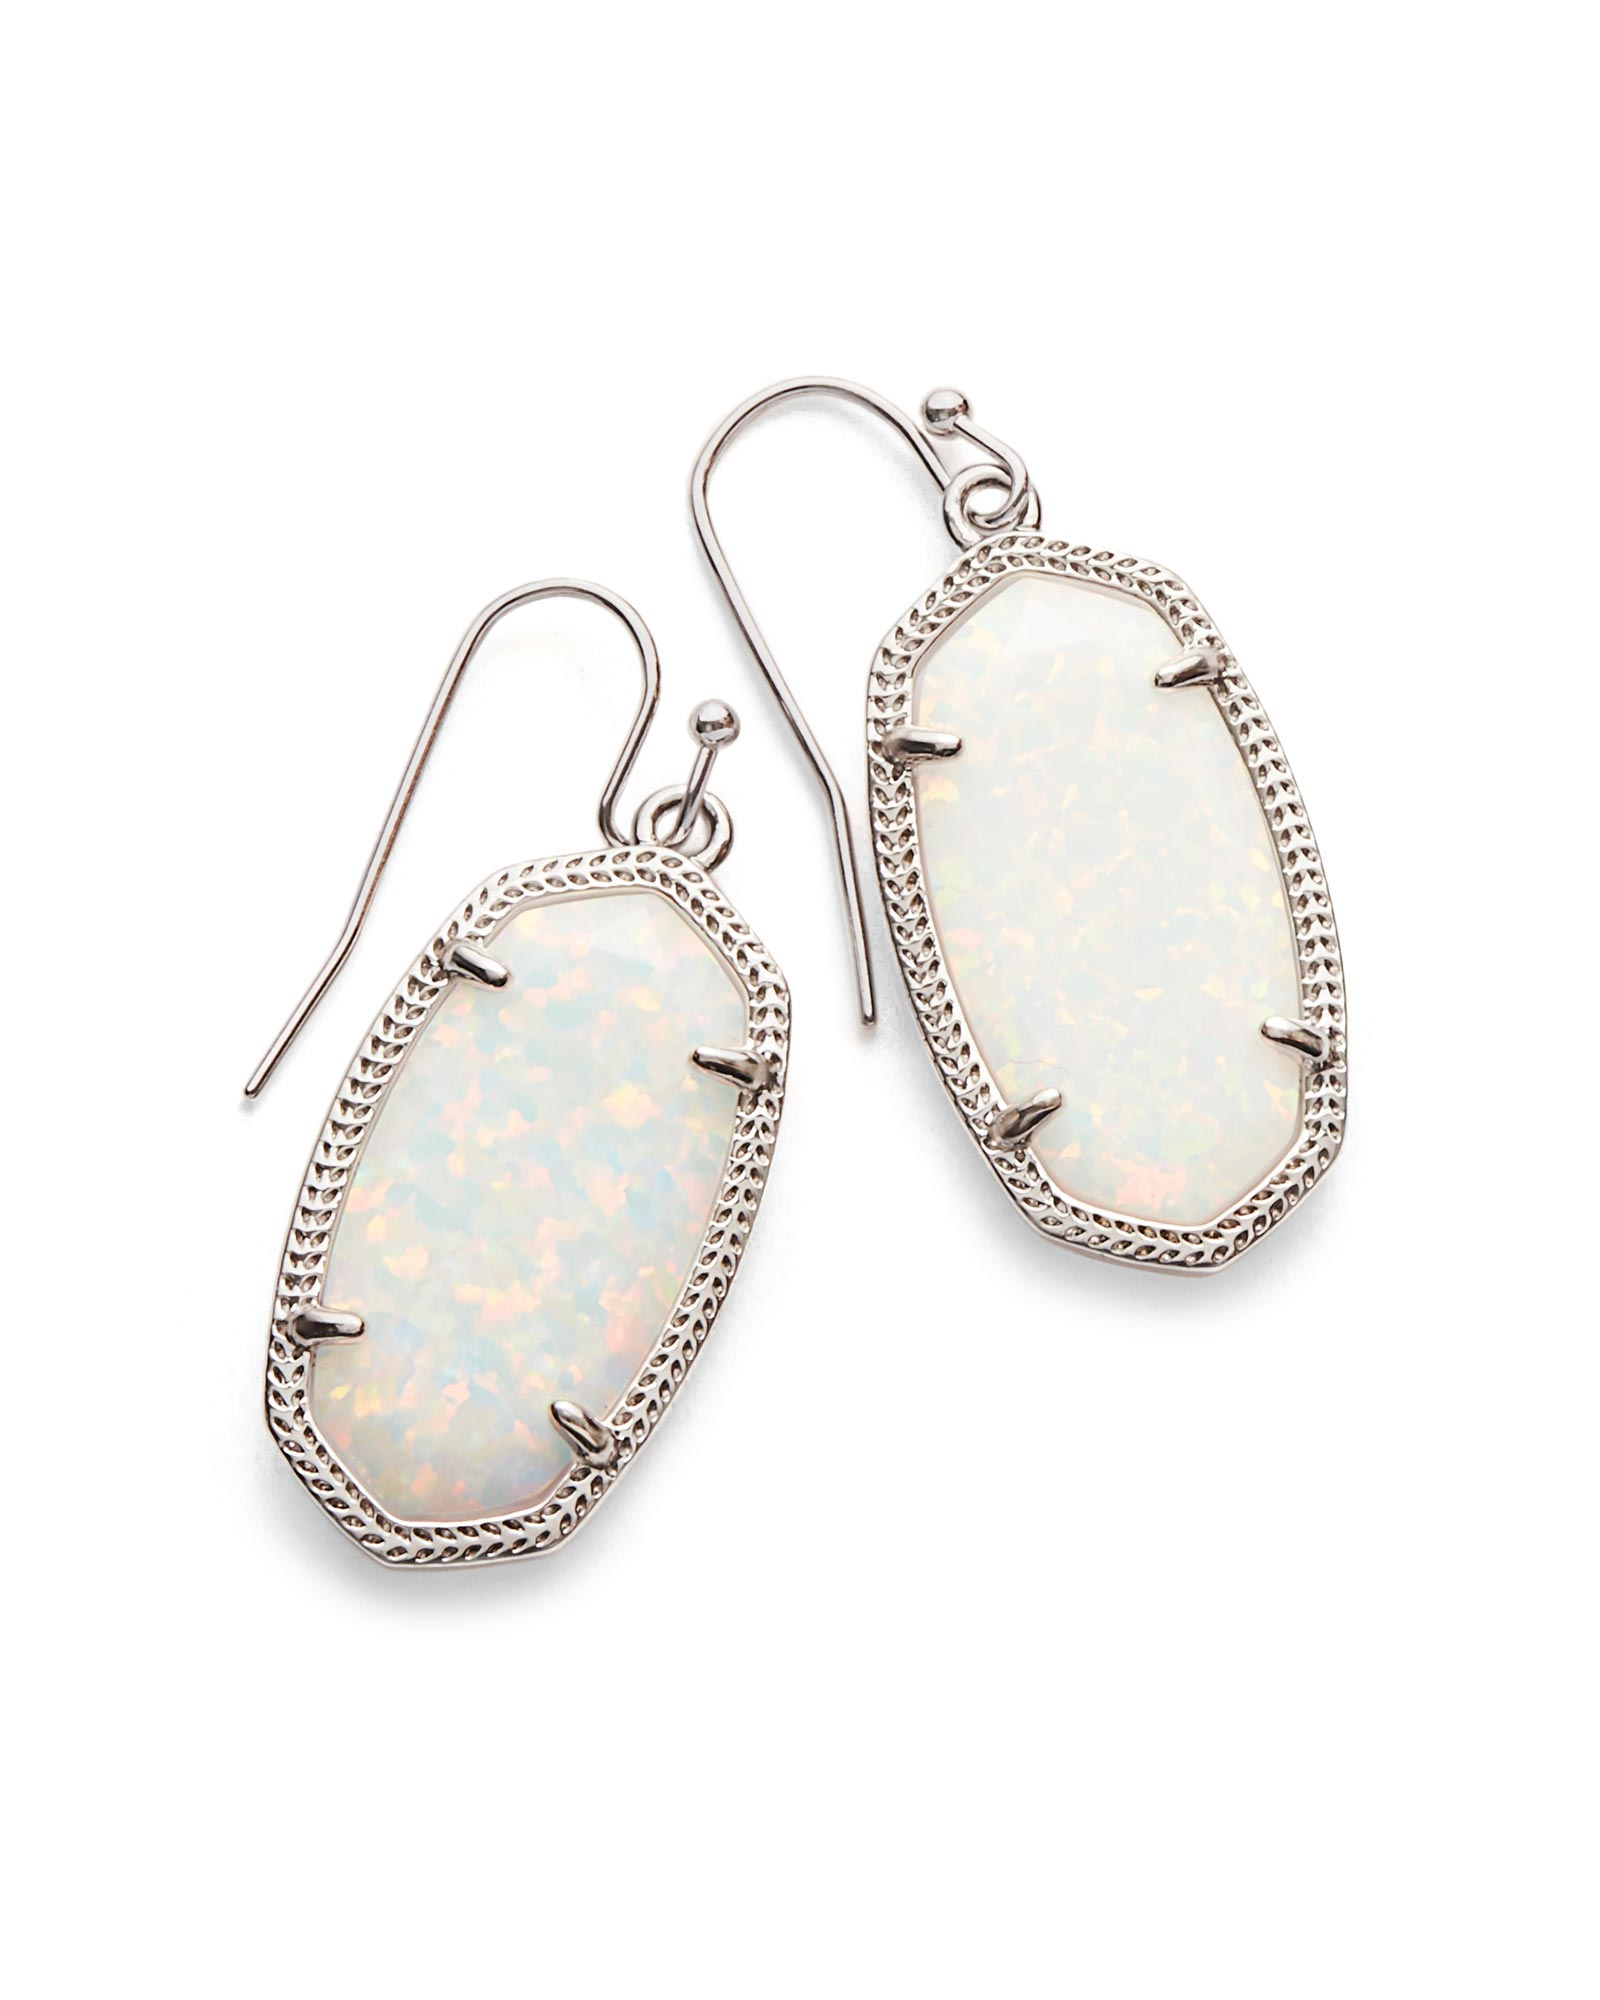 Dani Silver Drop Earrings in White Kyocera Opal